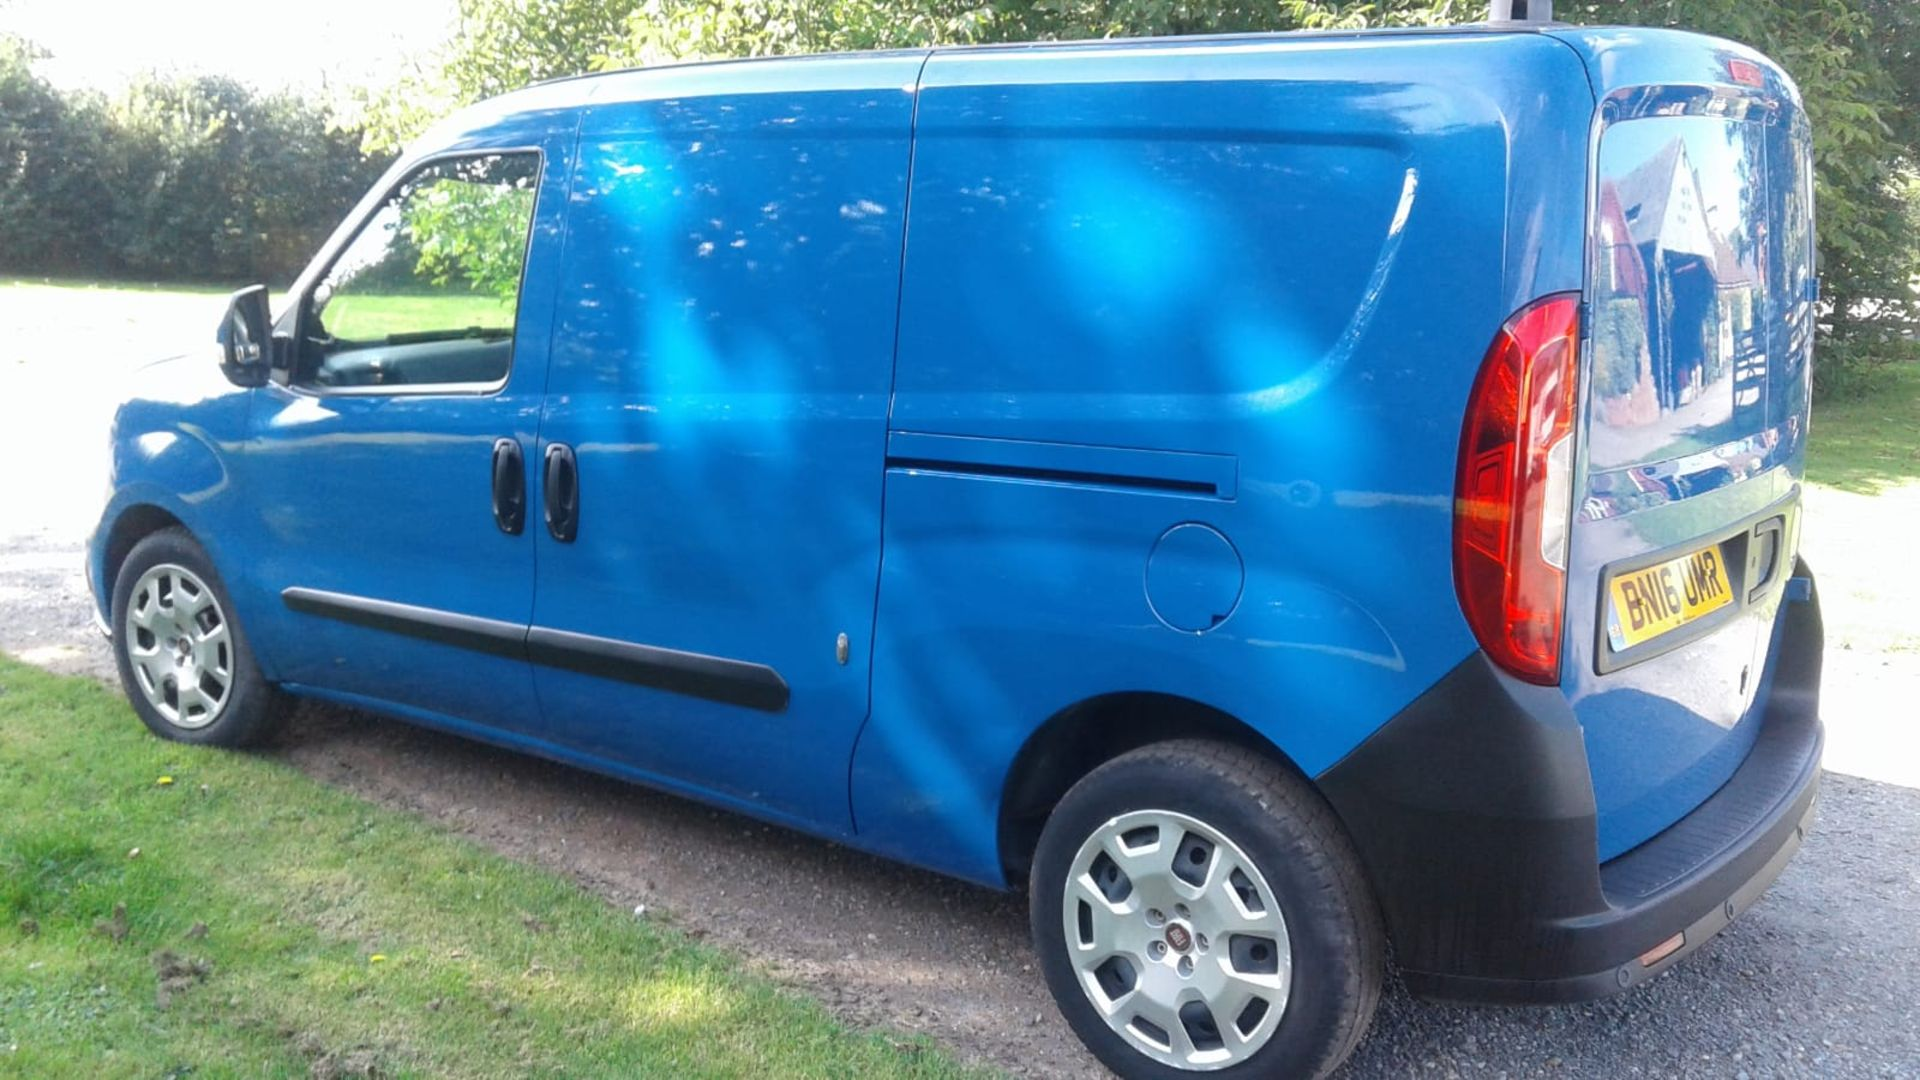 Lot 9 - 2016/16 REG FIAT DOBLO SX MULTI-JET 1.25 DIESEL BLUE PANEL VAN, SHOWING 0 FORMER KEEPERS *NO VAT*